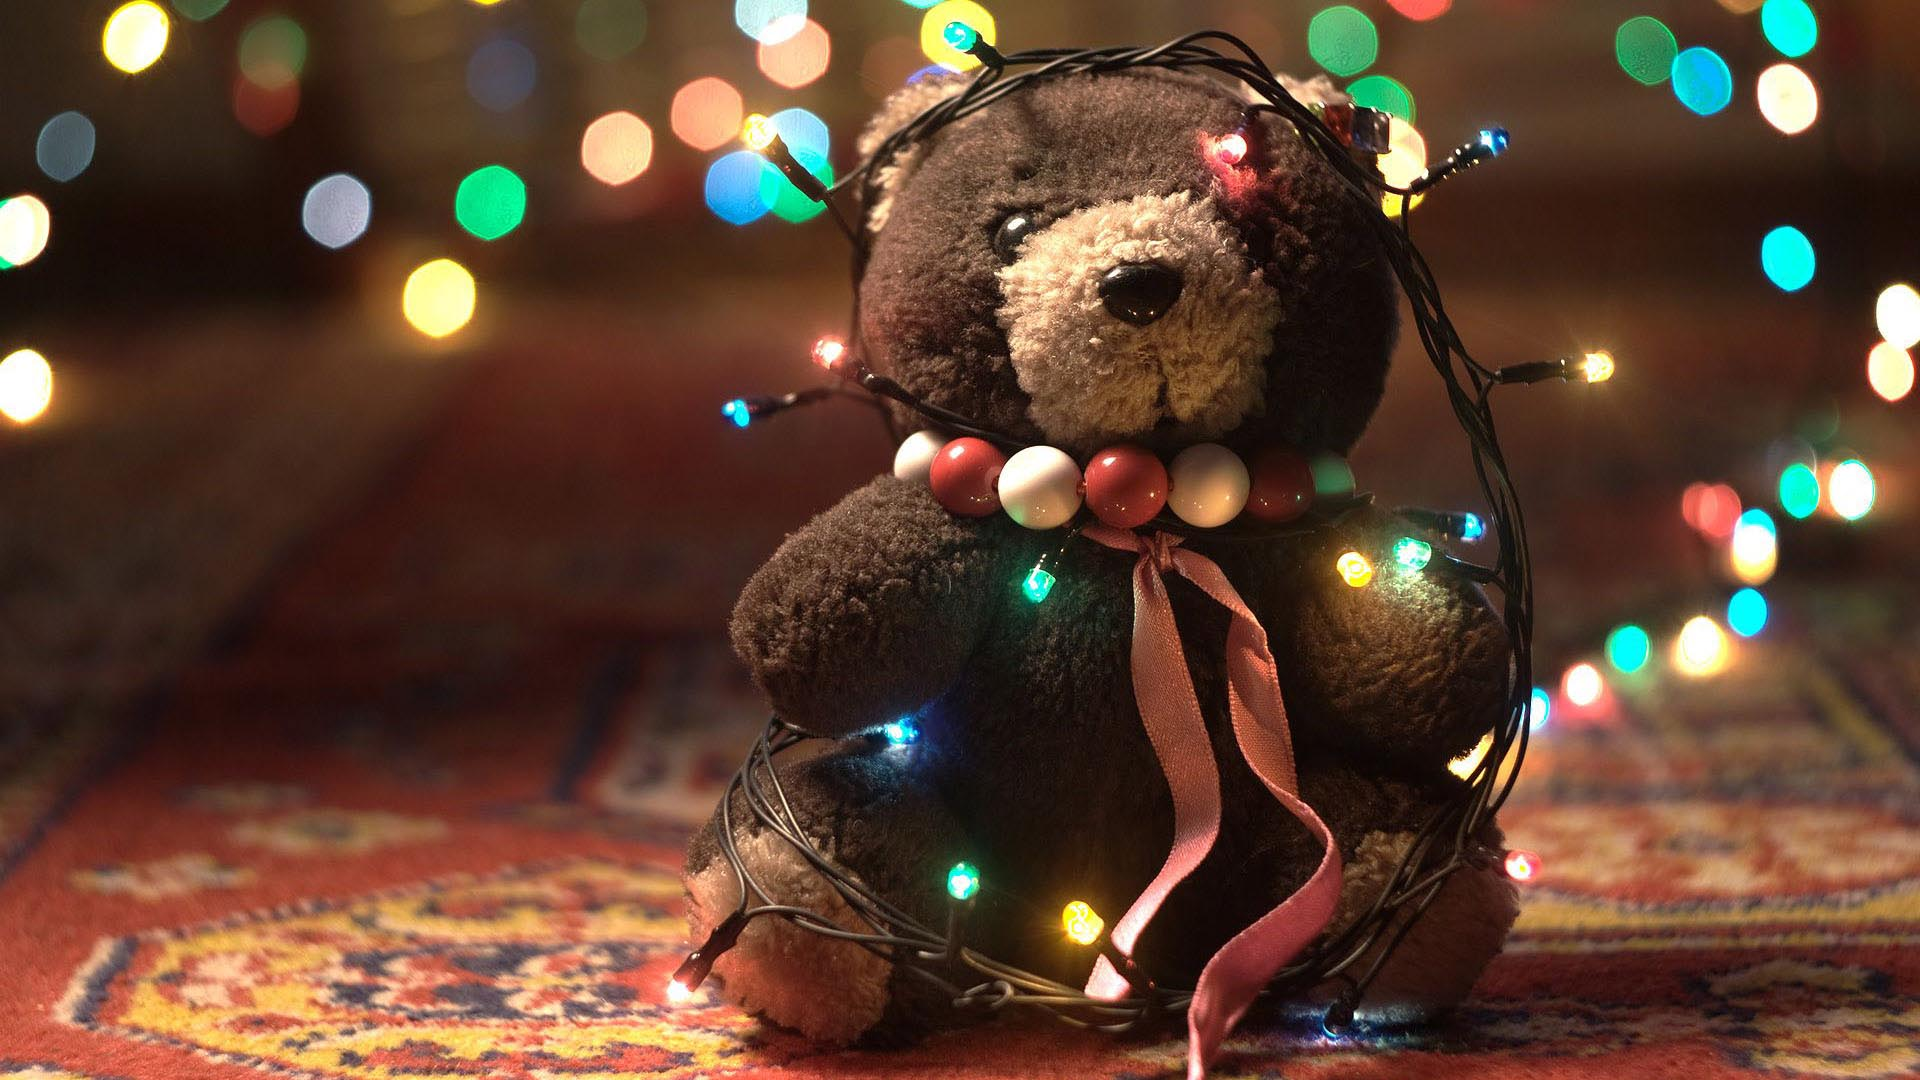 Christmas Lights wallpaper 2014   Shiny wallpaper 1920x1080